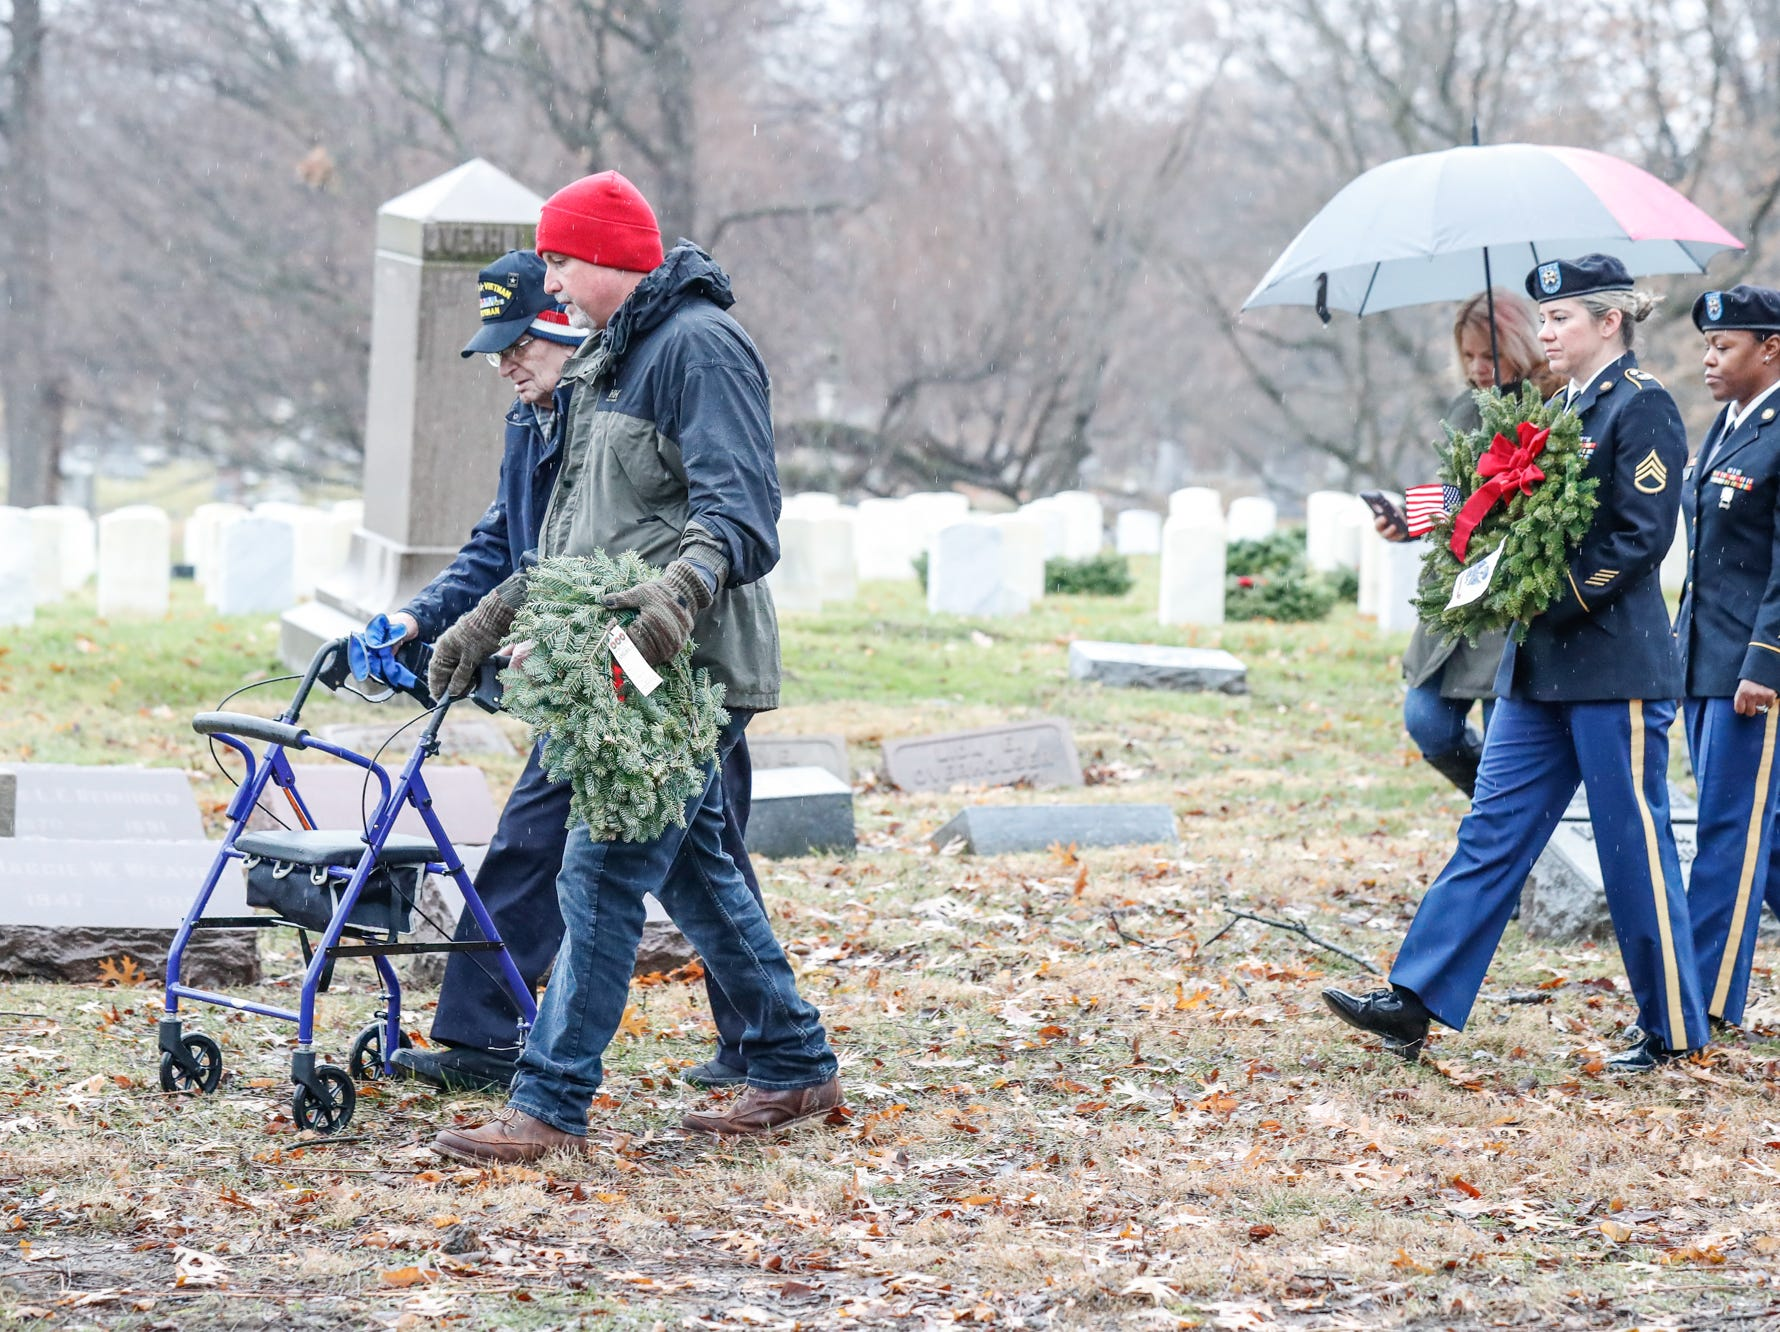 Bruce Bowman, front right, and Retired Sargent First Class, Bill Pridemore, front left, lay wreaths during the Wreaths Across America ceremony in remembrance of fallen military heroes at Crown Hill Cemetery on Saturday, Dec. 2018.